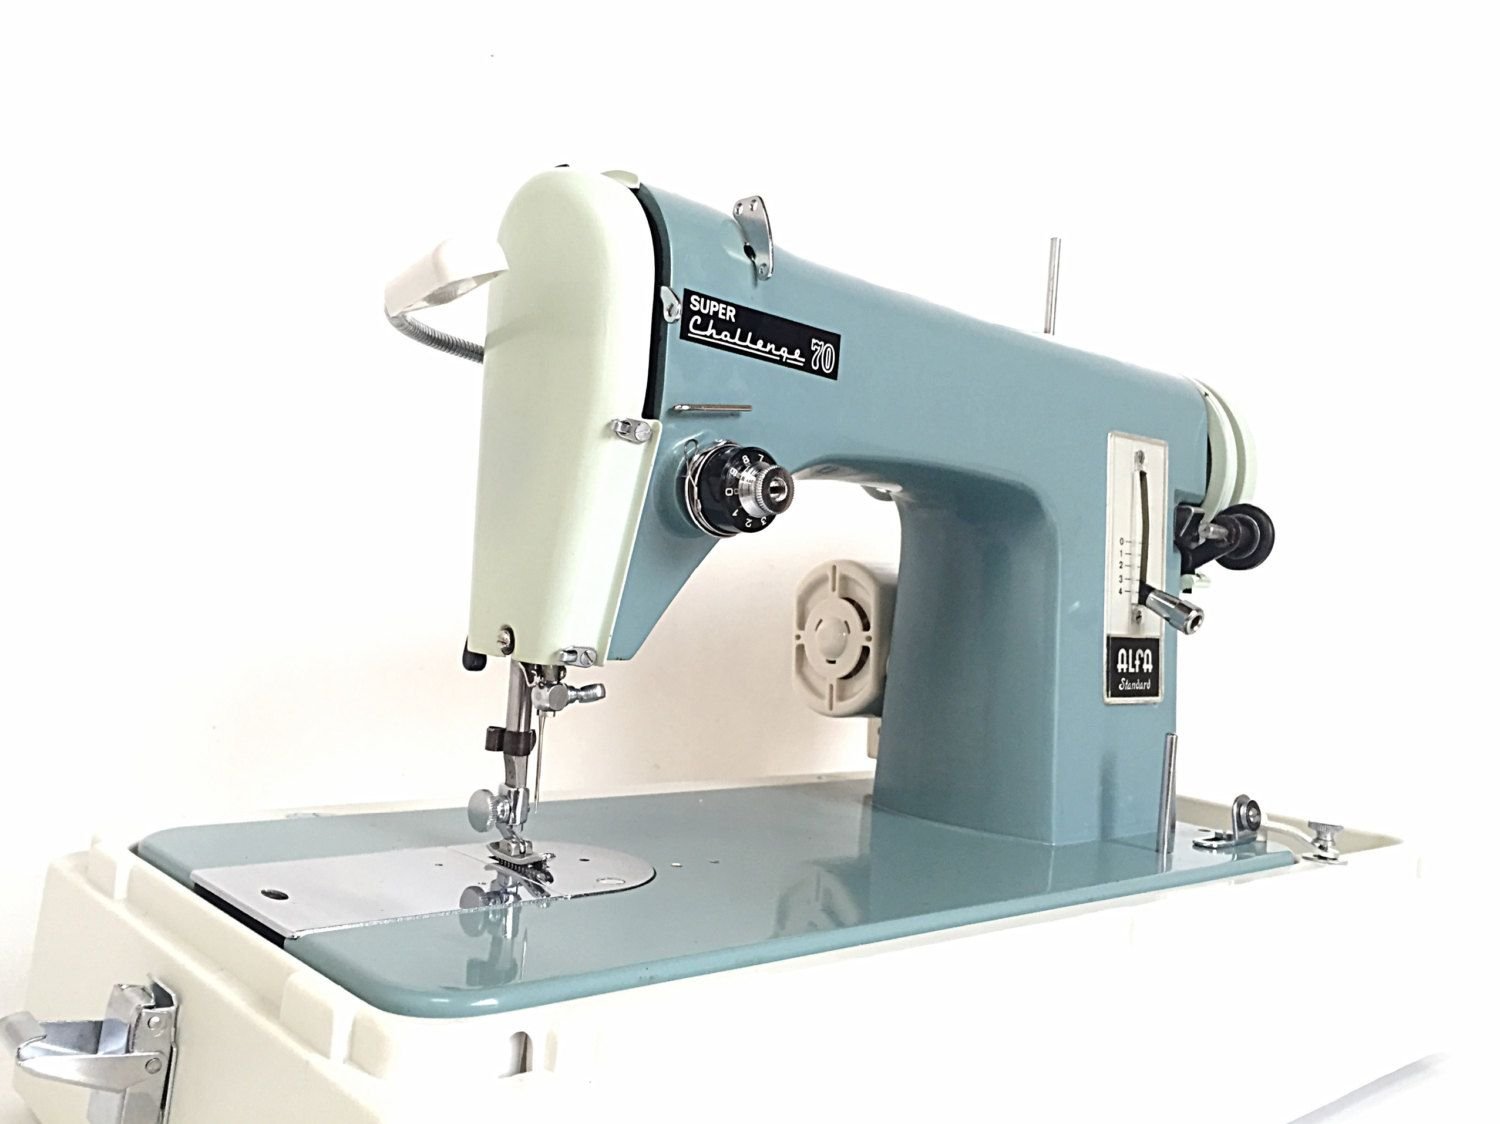 ALFA 70 Heavy Duty Semi Industrial Sewing Machine + Walking Foot - Sew Leather, Danim, Canvas, Upholstery, Bulky & General Materials by SEWING4EVERYONE on Etsy